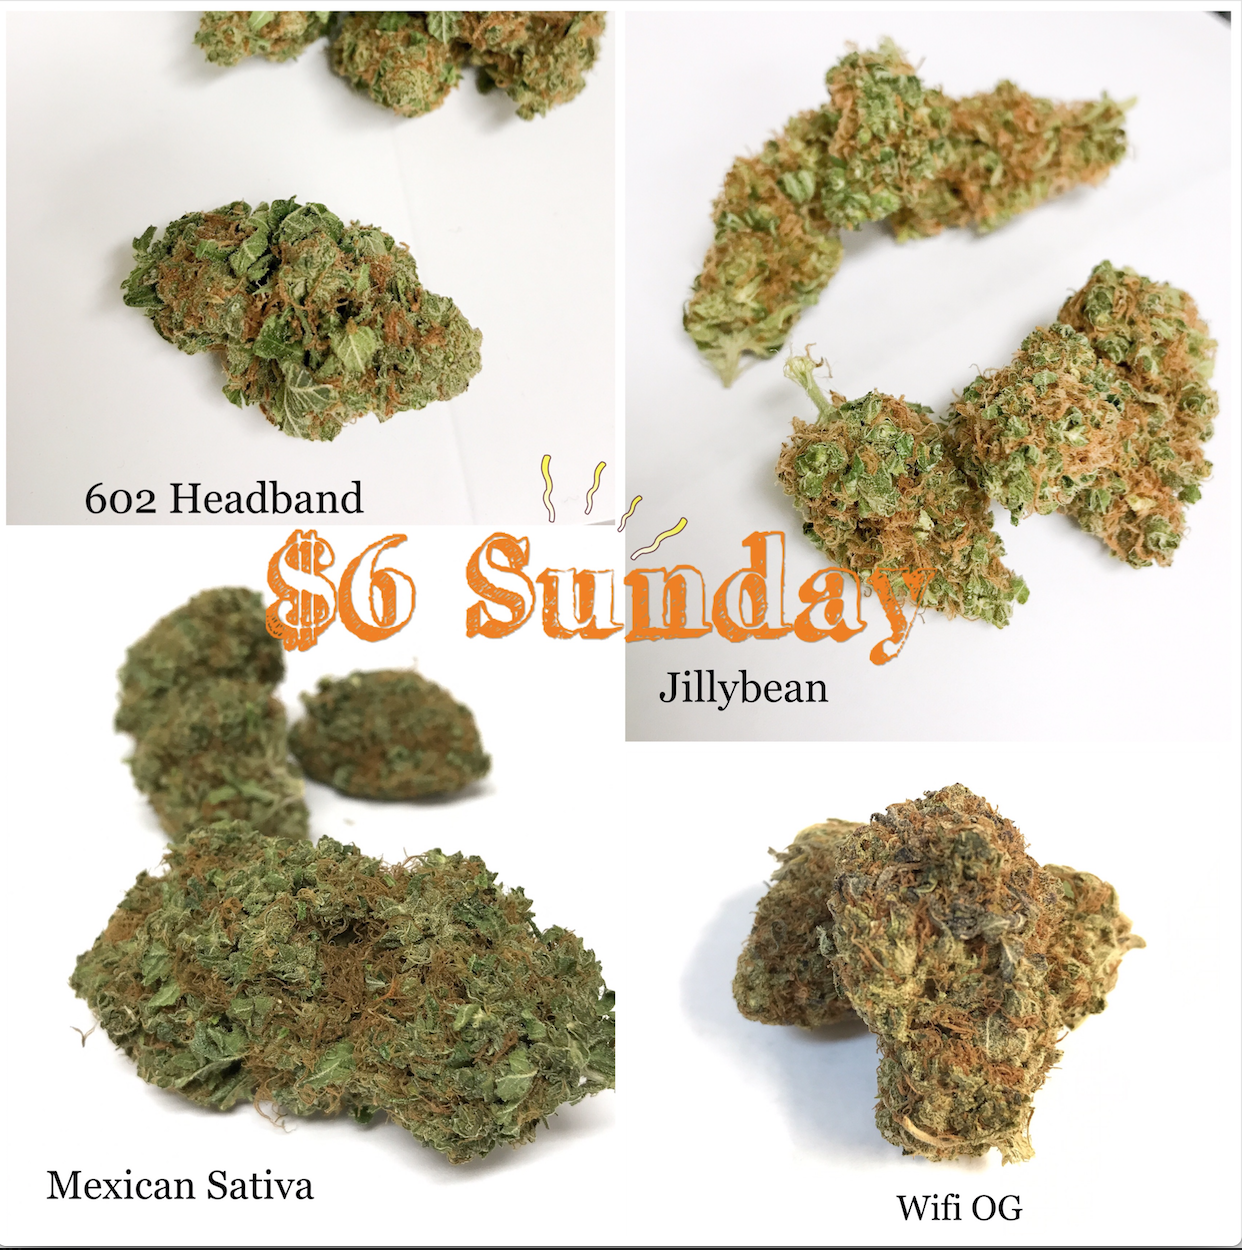 602 headband jillybean mexican sativa wifi OG-SAINTS